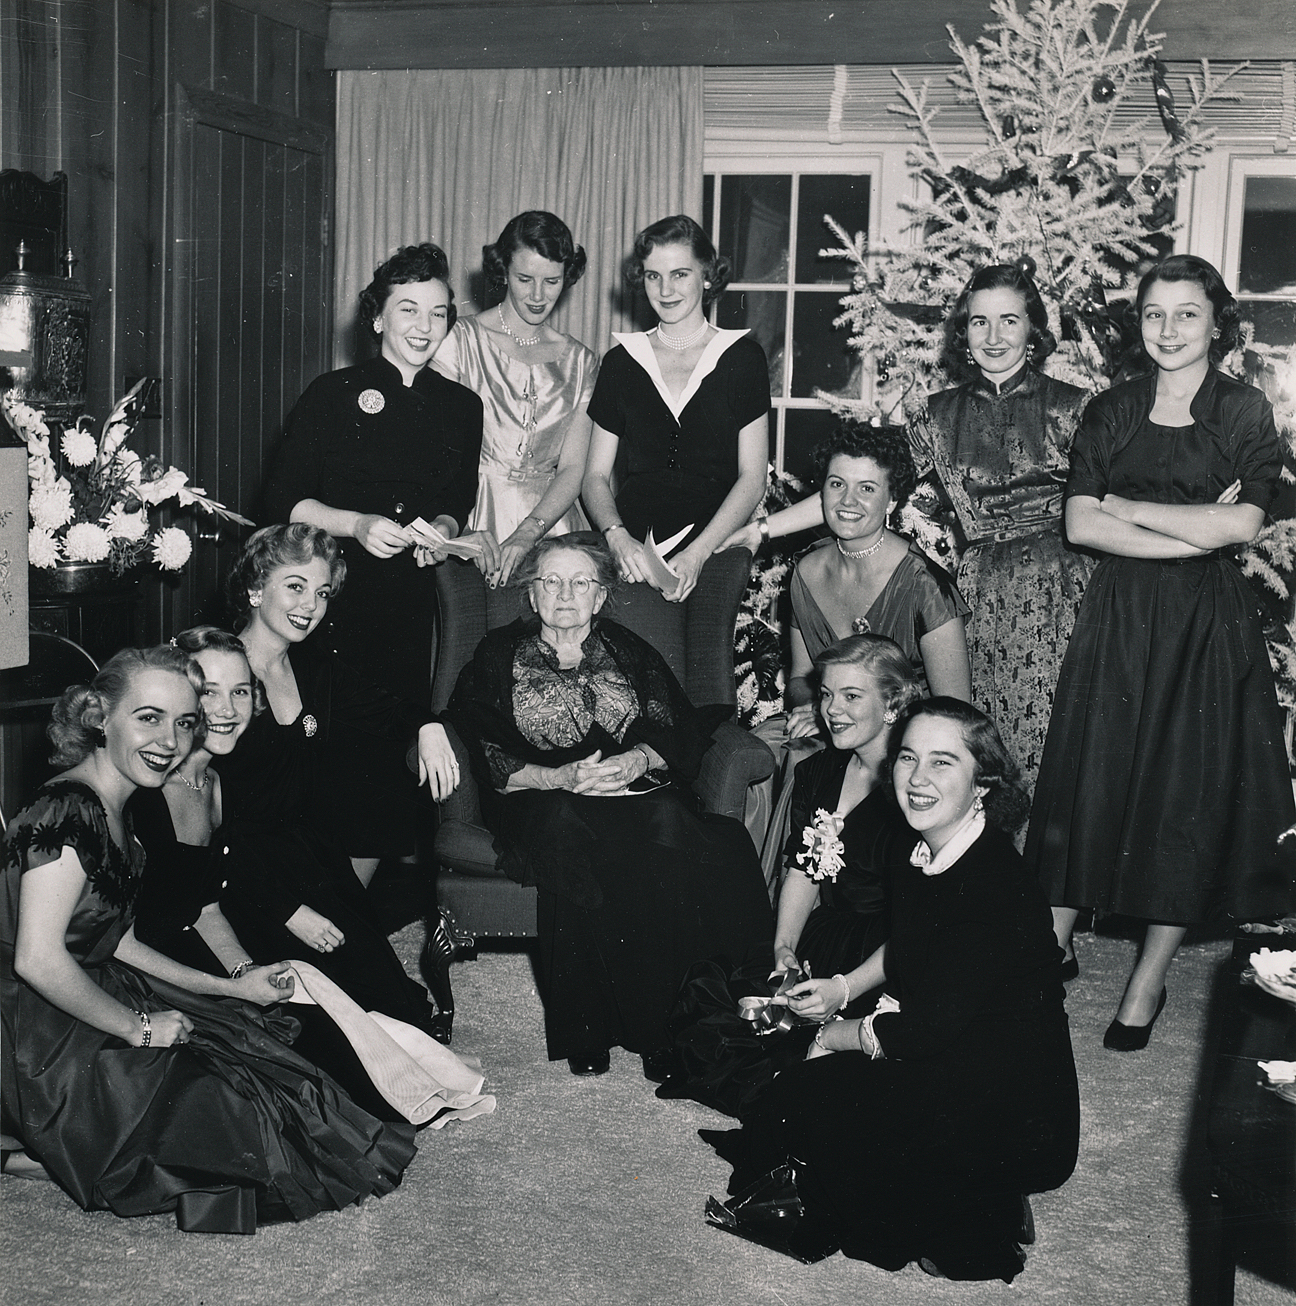 (above) Coffee and desert with the oldest surviving Dallas debutante, whose name I don't know. At left kneeling: Betty Butler, Ann McBee, Mary Jo McCorkle; standing left to right: Phyllis Anne Carter, Carolyn Craugh, Joy Brown, Marilyn Ray, Mary Margaret Lackey; at right kneeling from back to front: Sarah Sharp, Ruth Ann Rogers, Margaret Kervin.